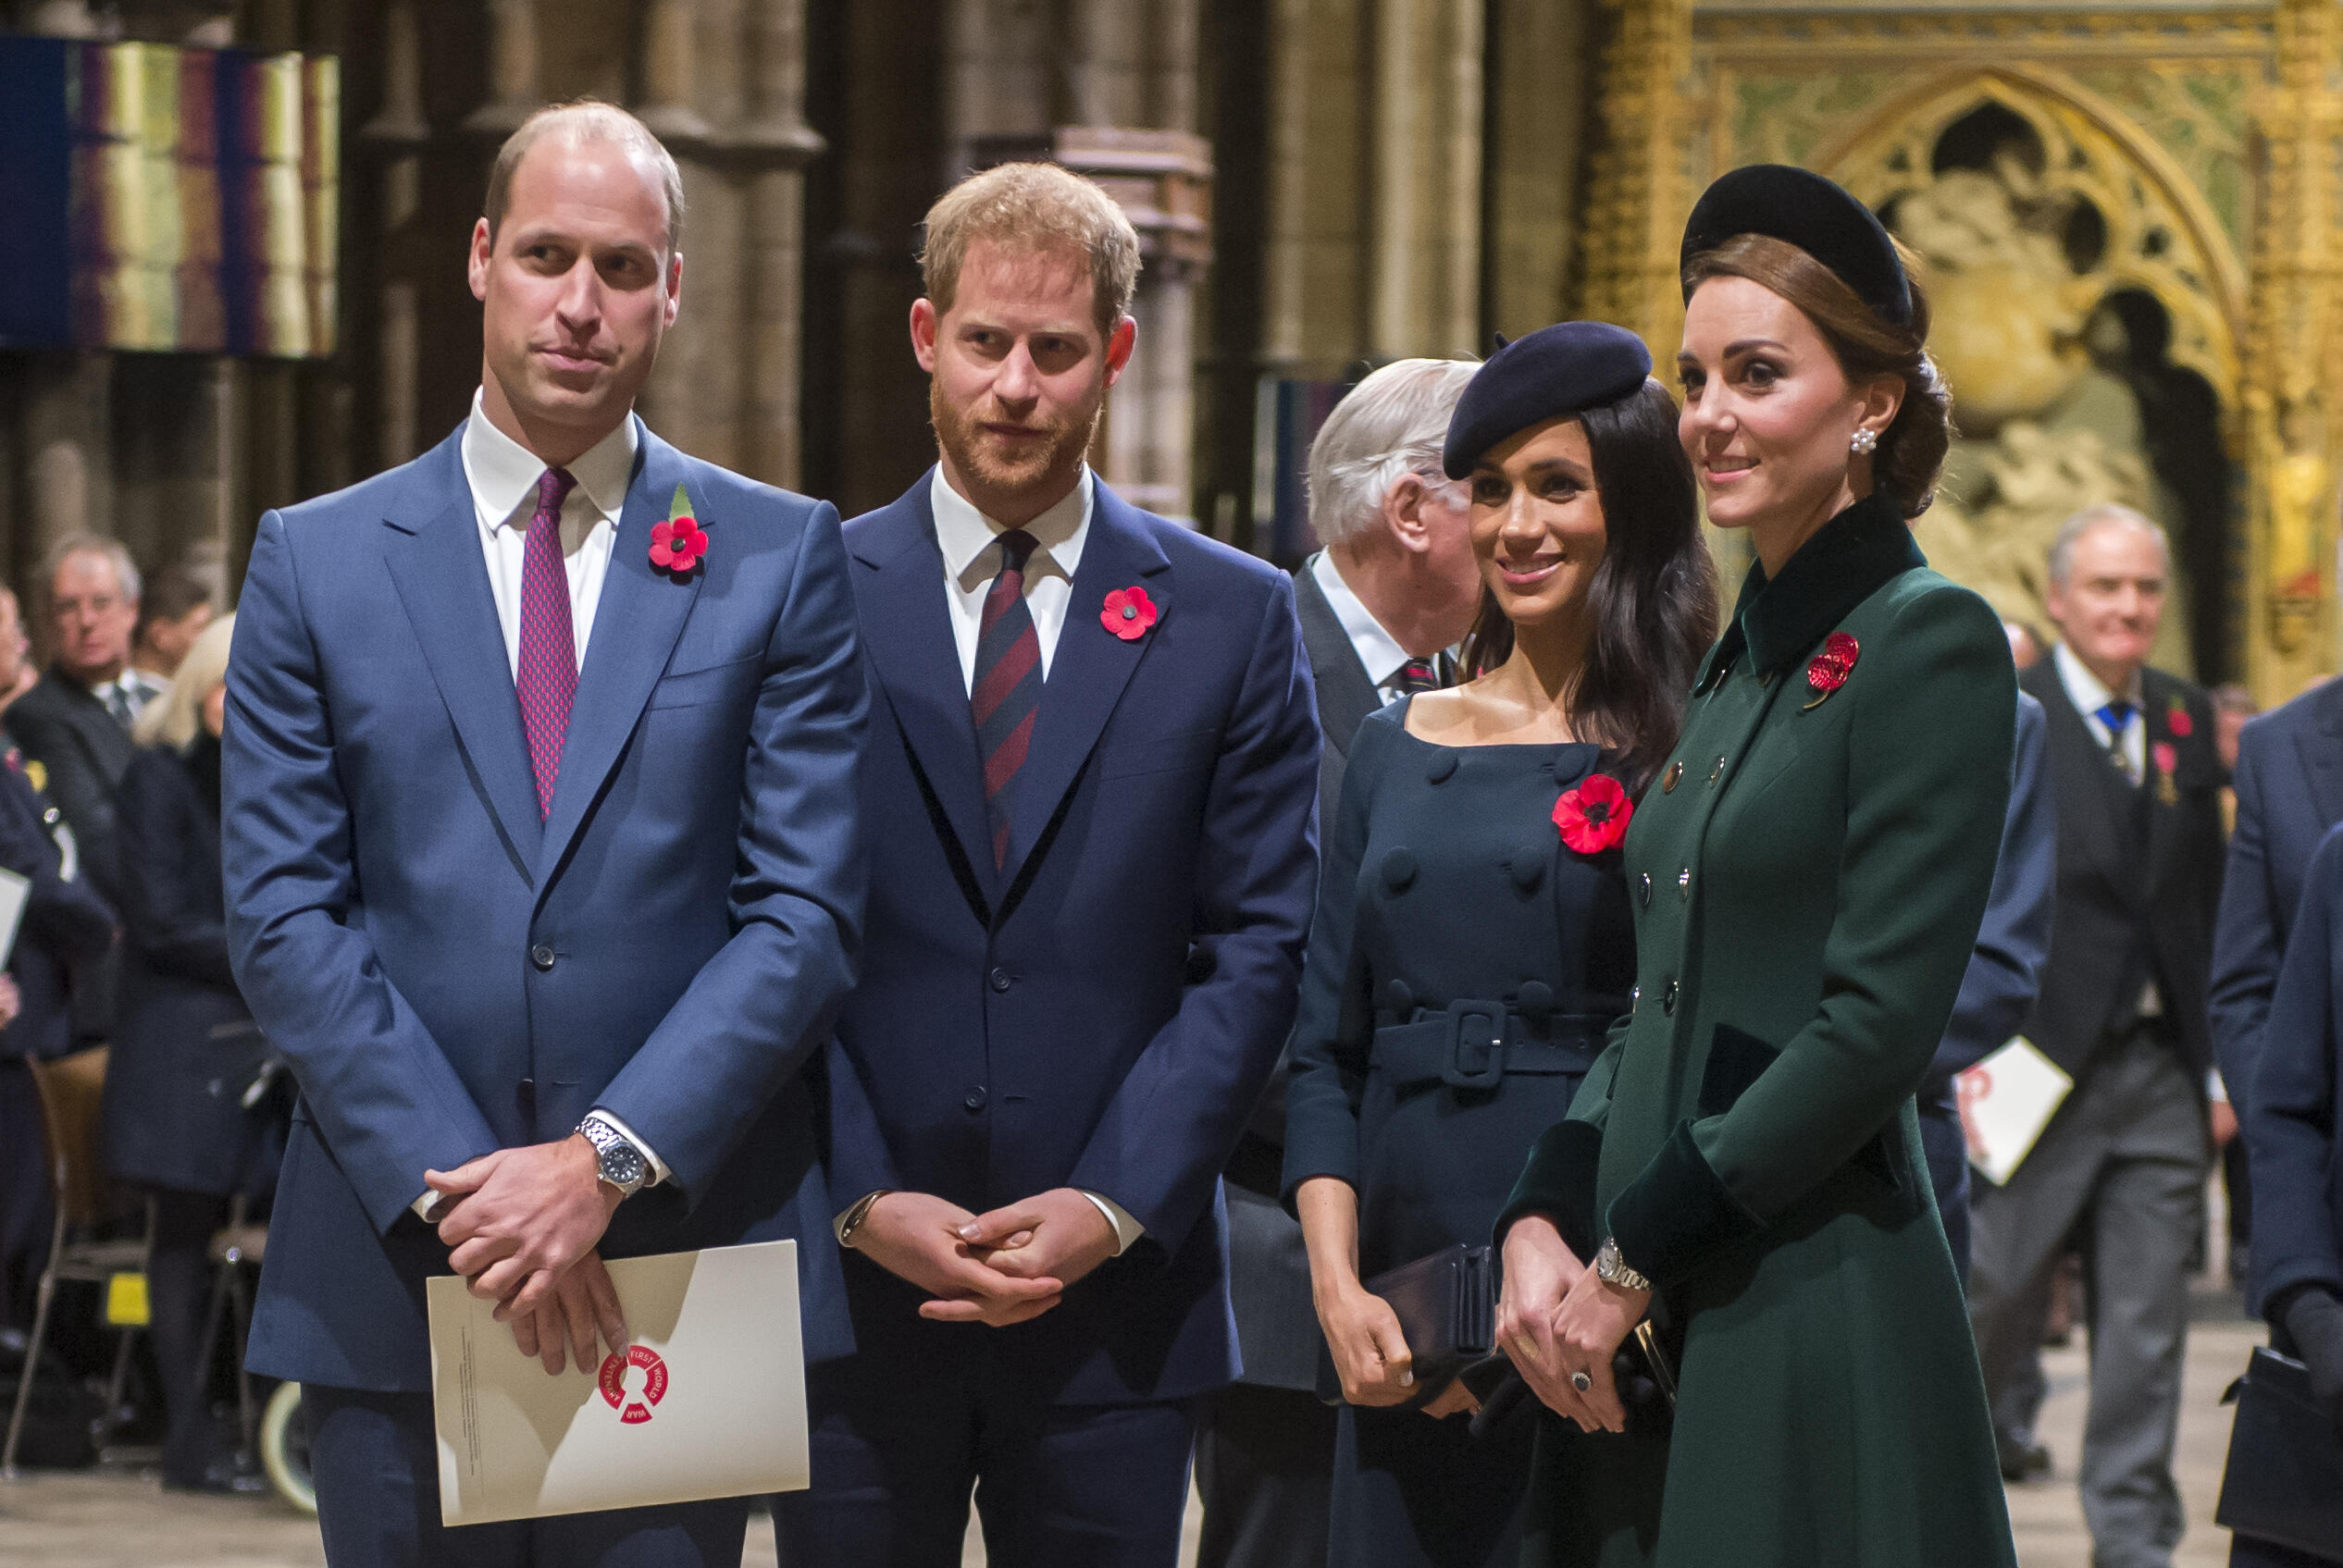 Princes William & Harry Are Feuding, Not Meghan Markle & Kate Middleton